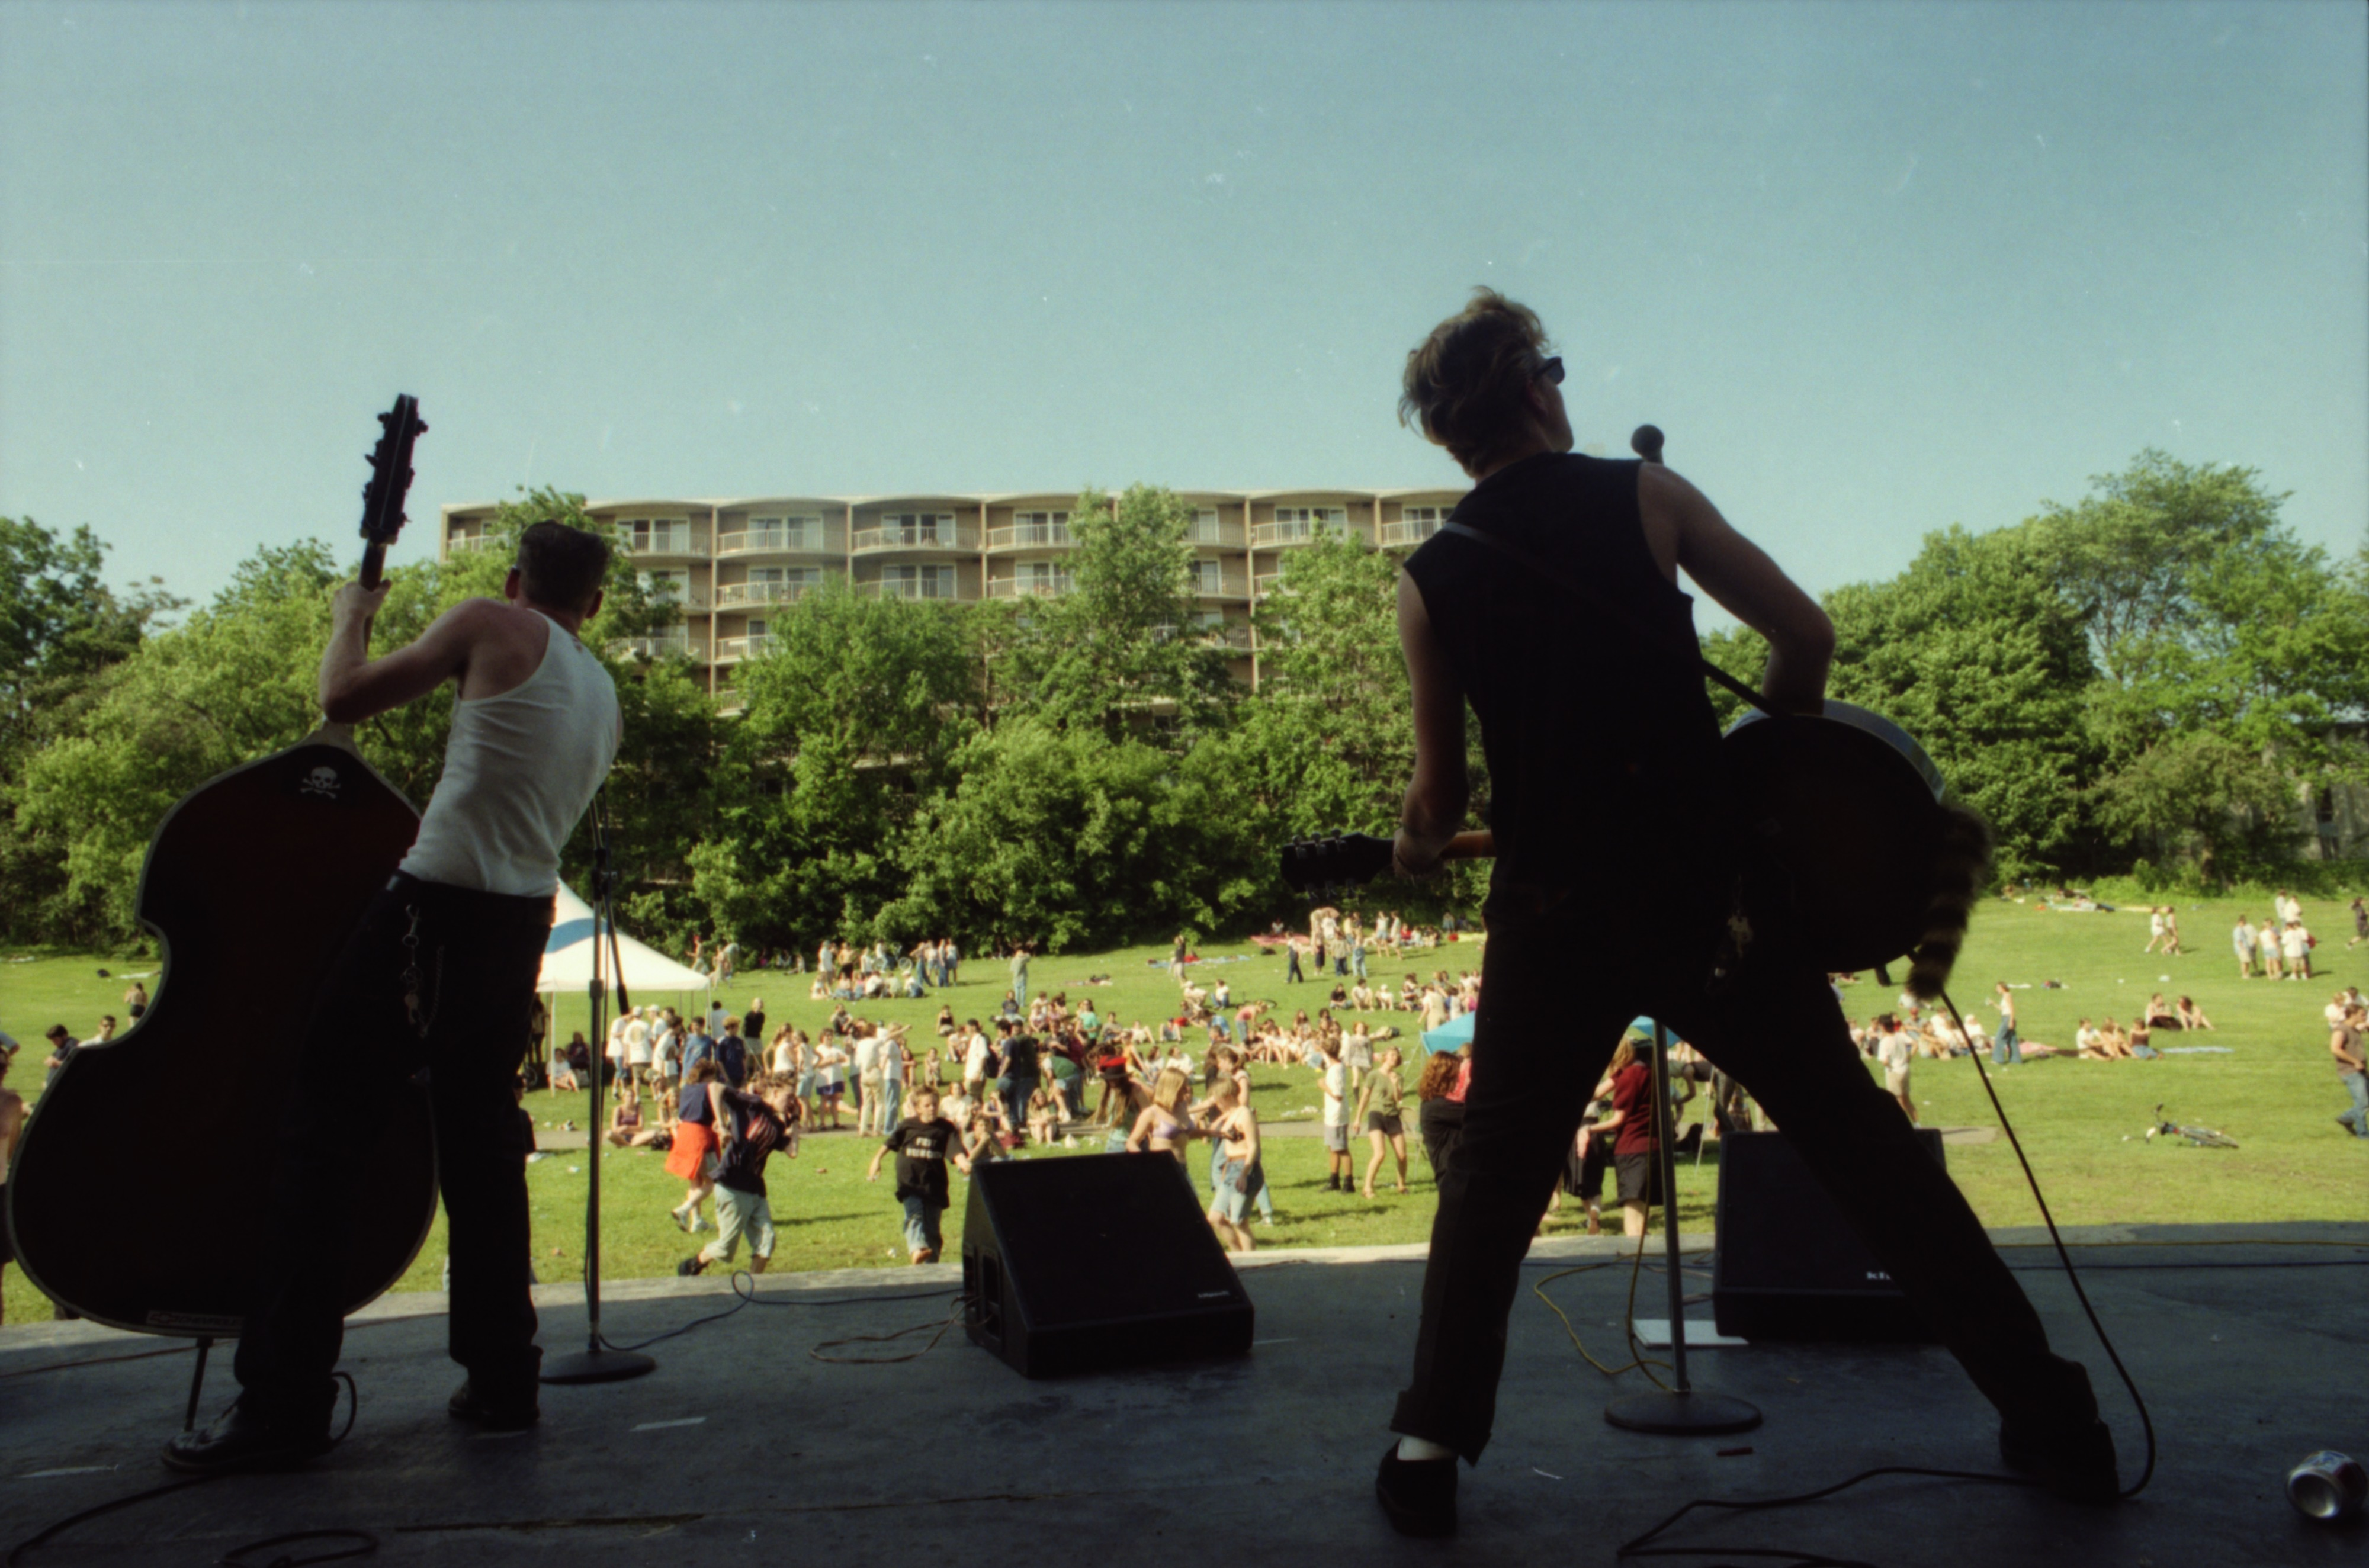 Lucky Haskins performs at Comstock, West Park, June 13, 1996 image